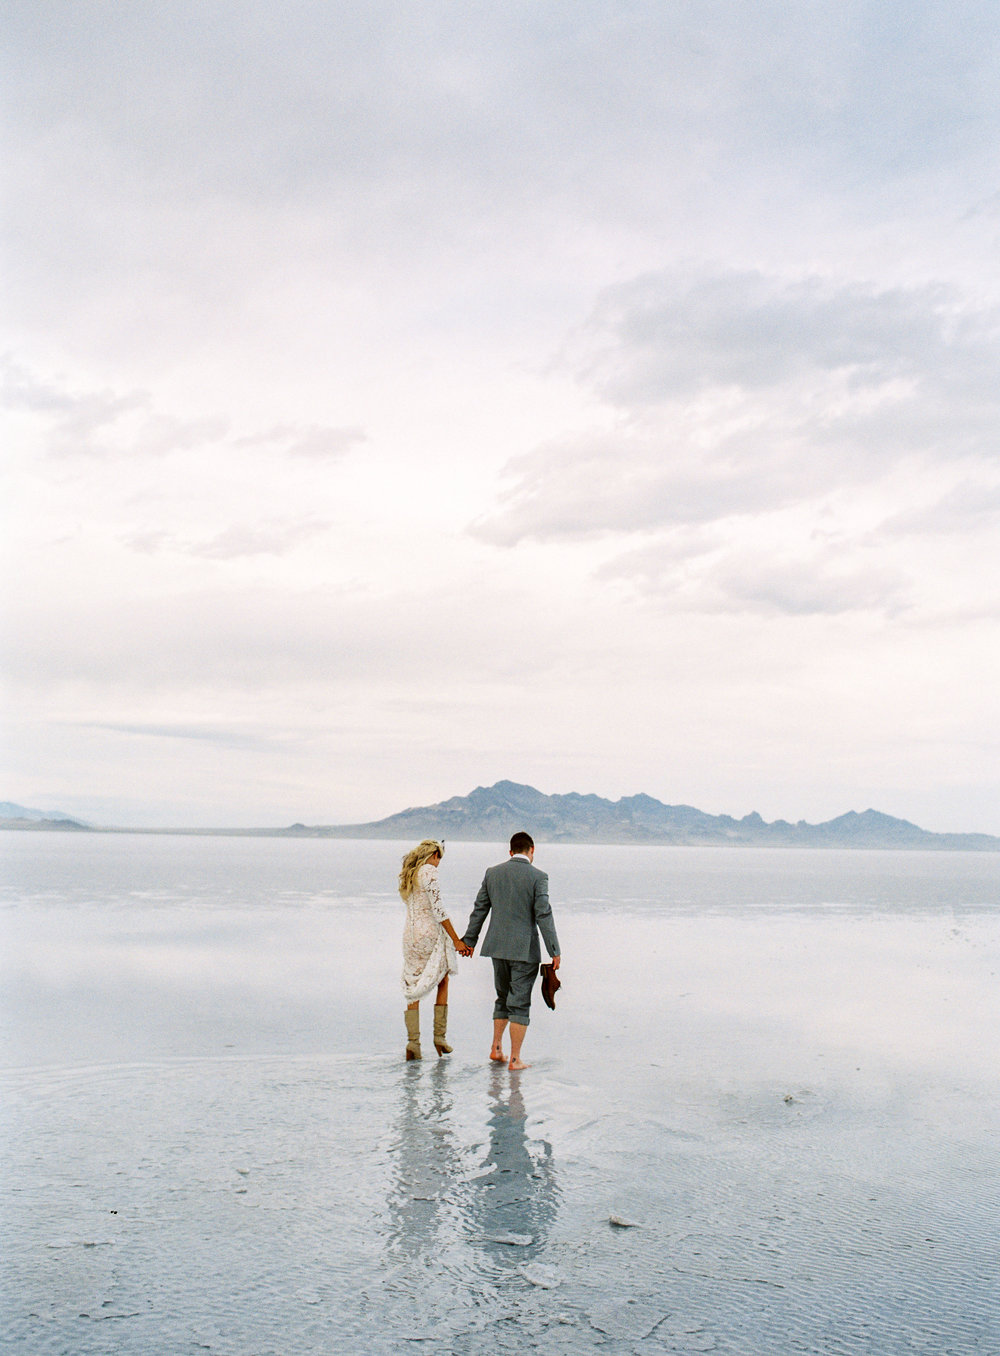 Fuji 400h fine art film photographer bonneville salt flats bridals utah